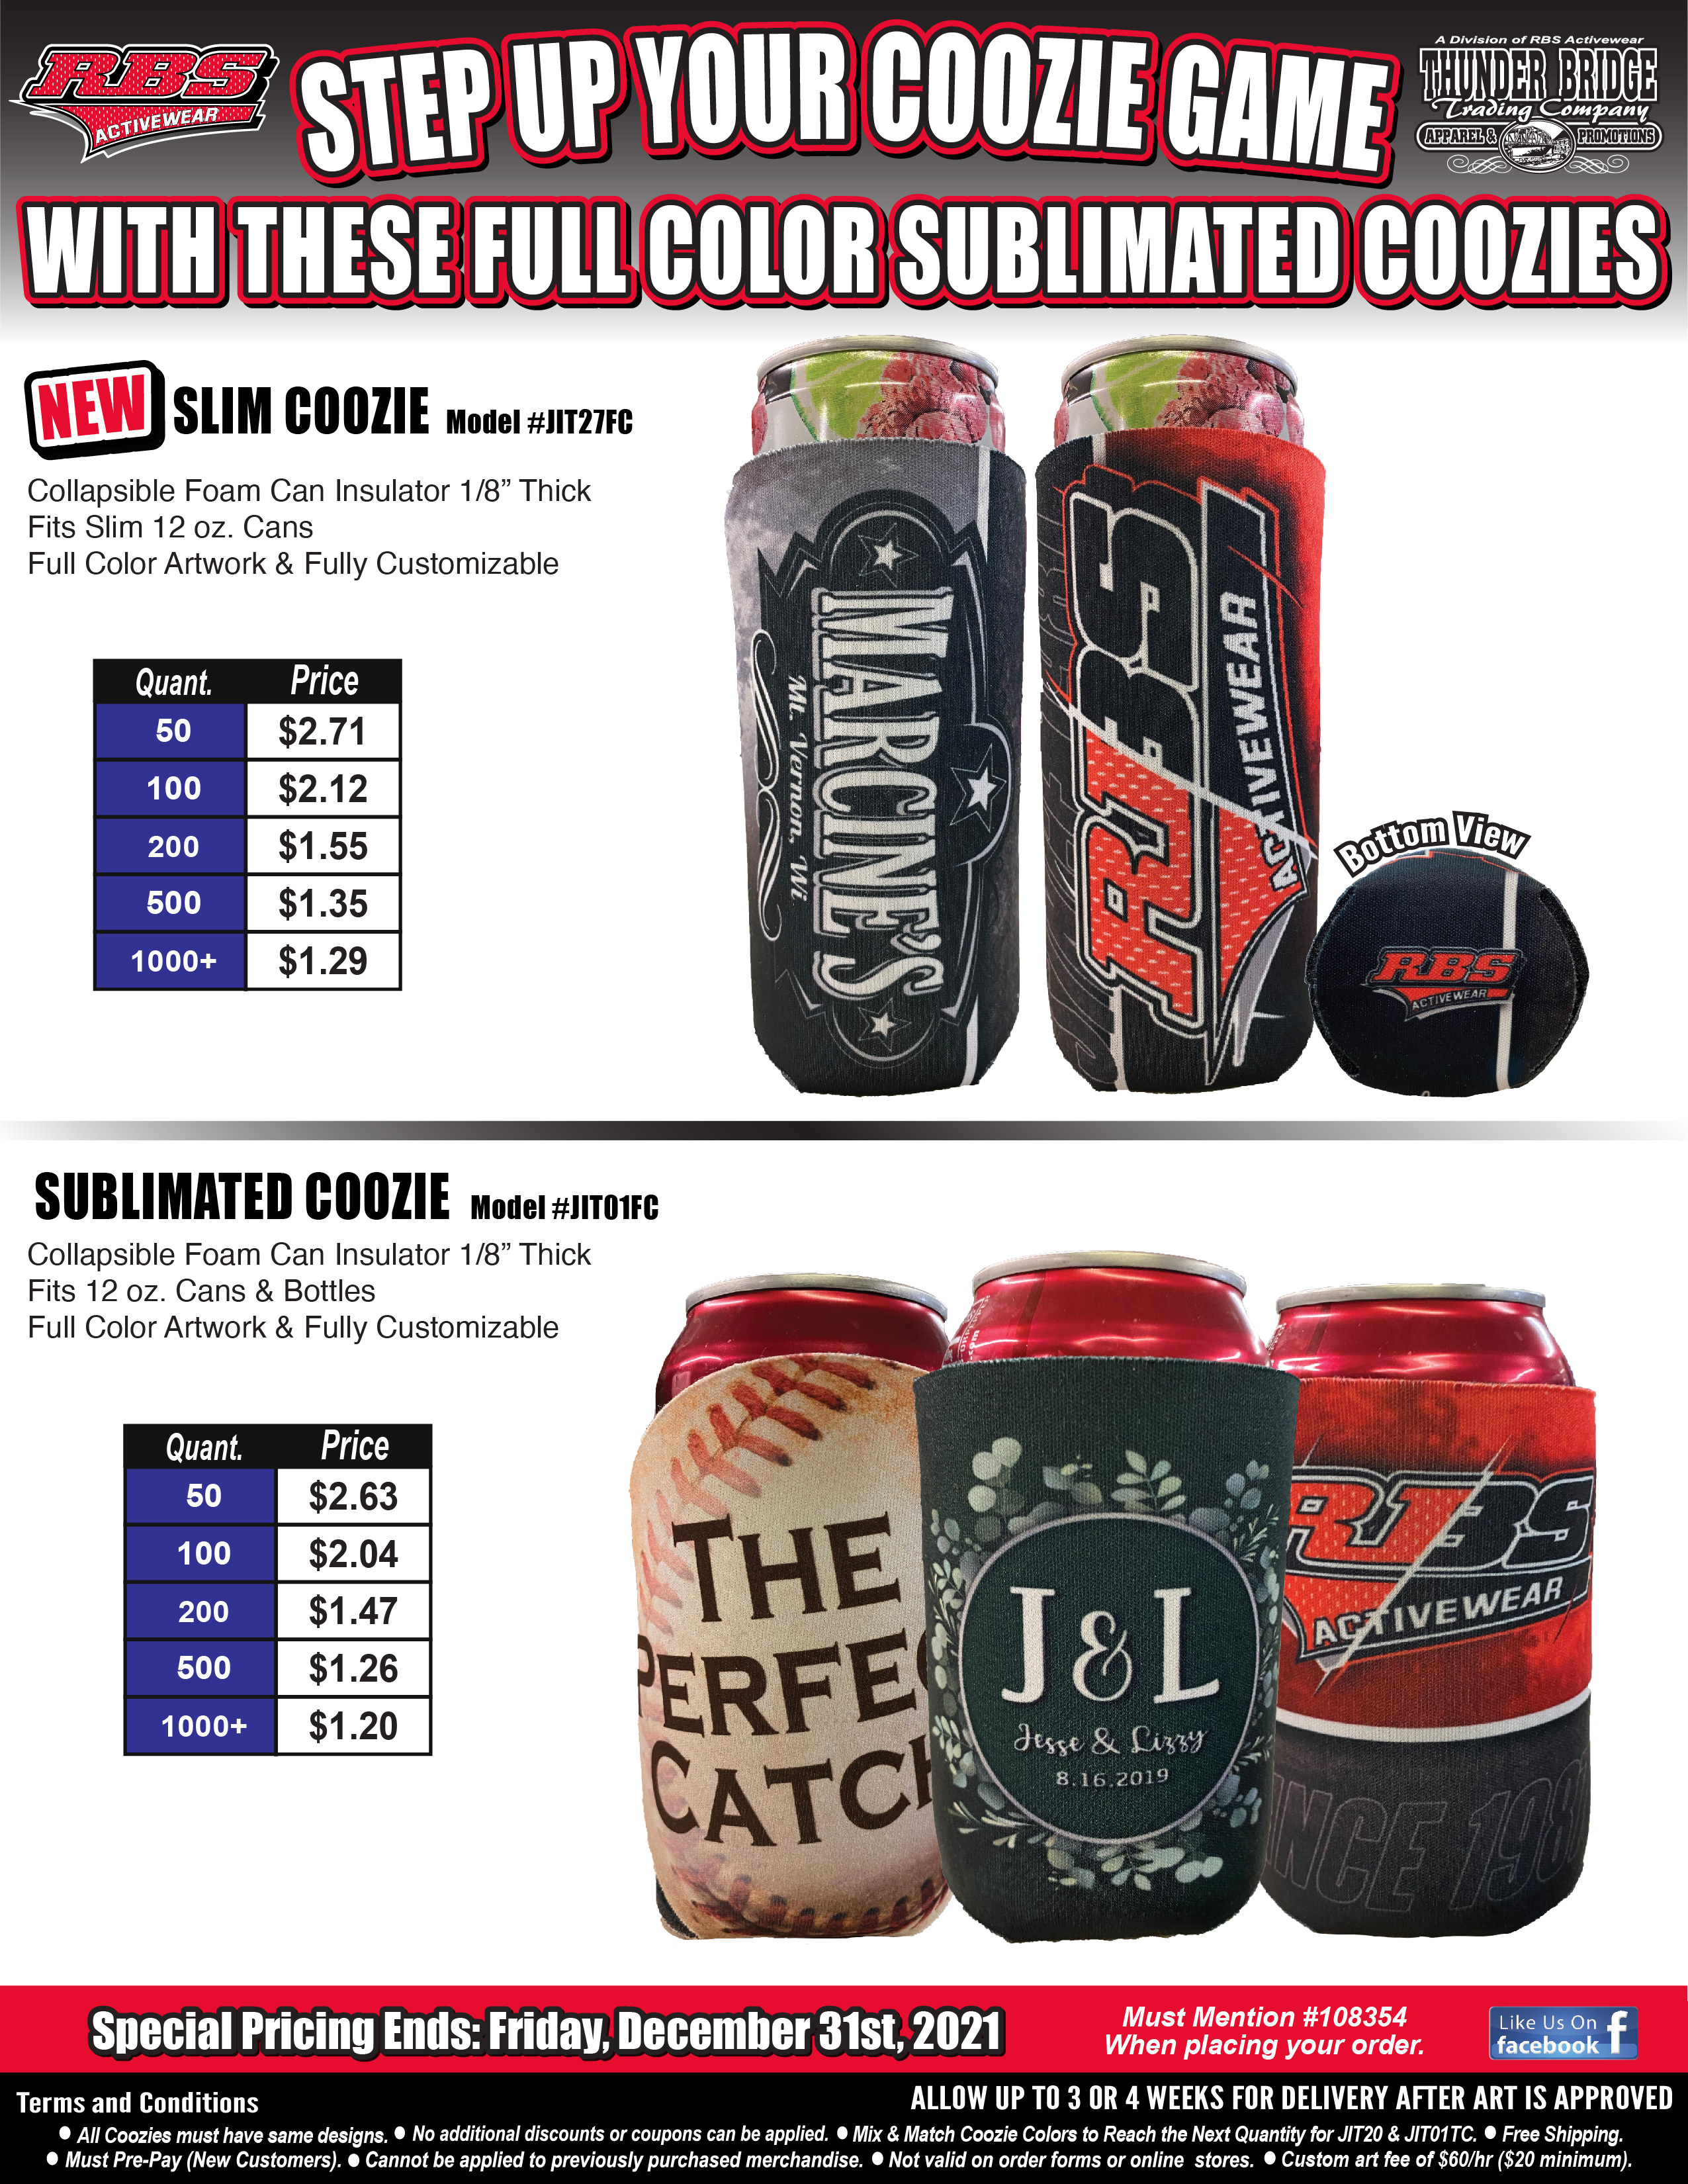 Step Up Your Coozie Game Special Downloadable Image